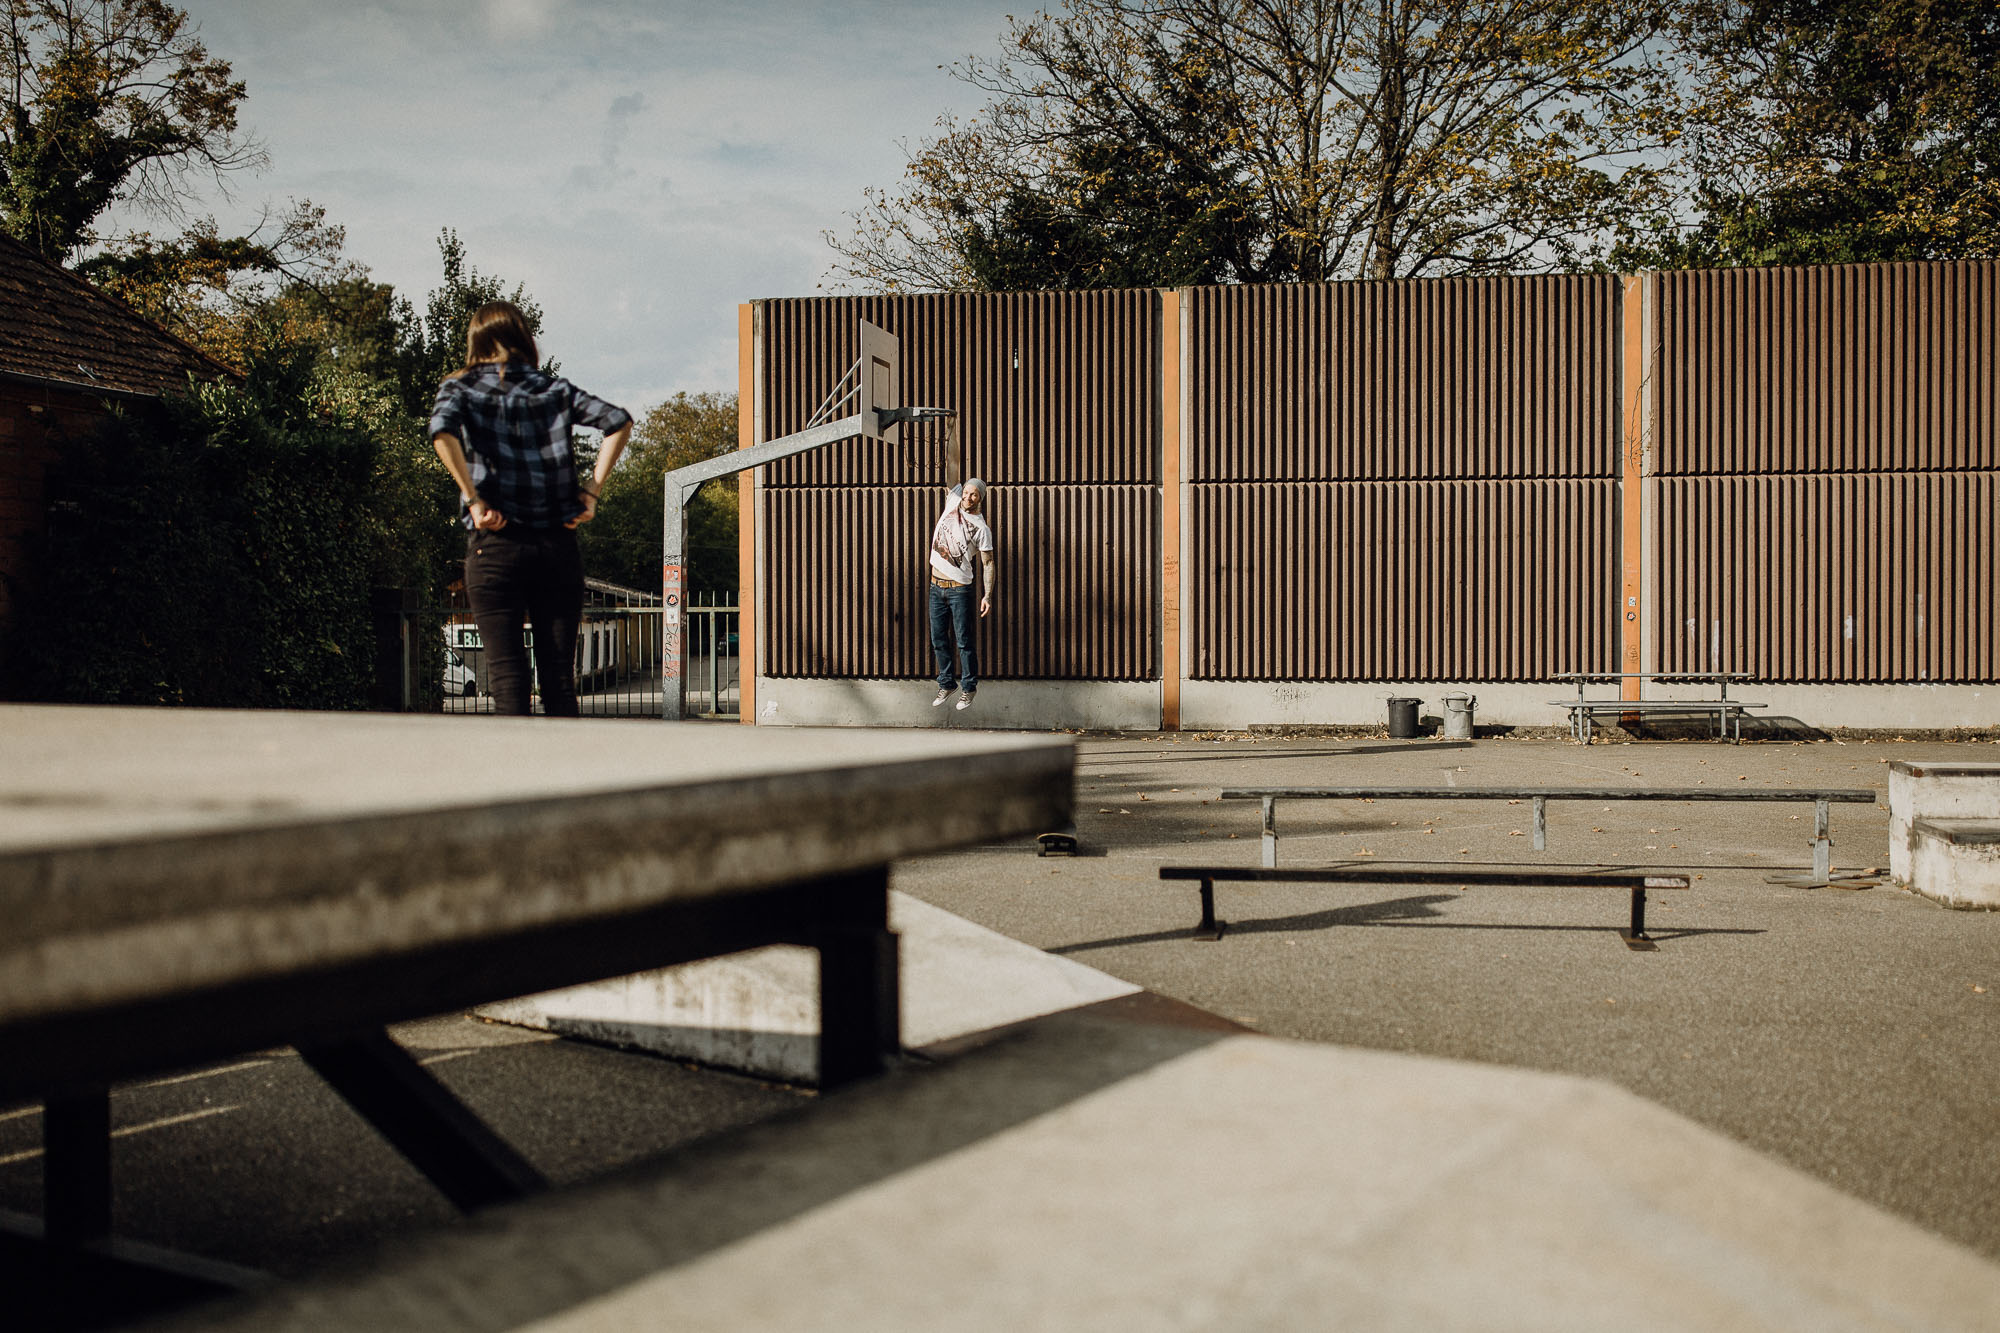 raissa simon photography destination couple black forest offenburg skate 76 - Katharina + Ben